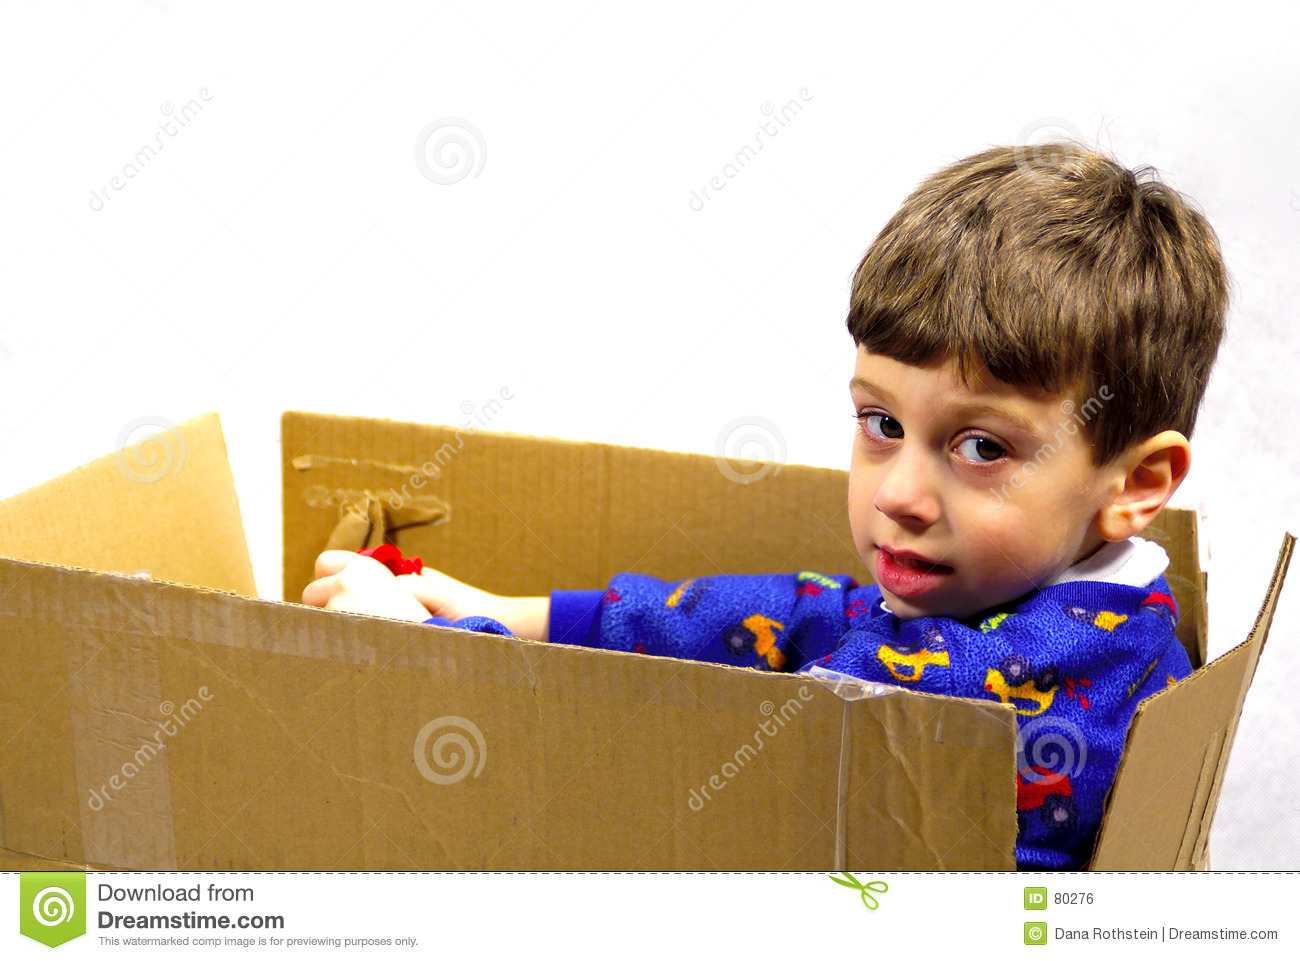 Child in a Box